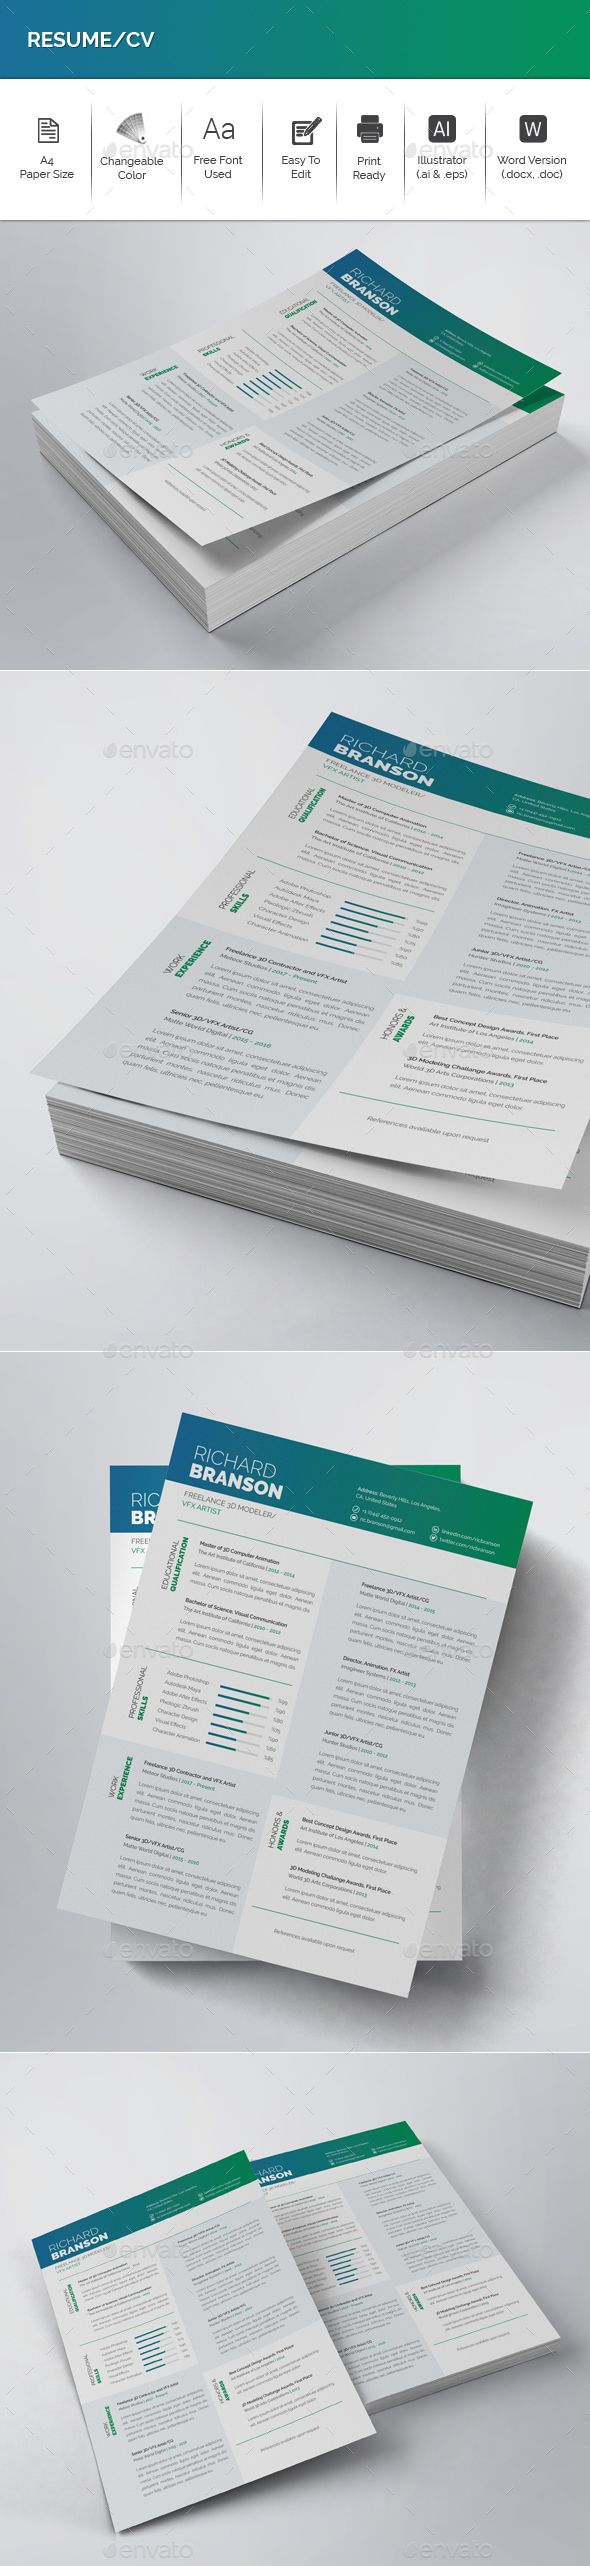 Cv Templates Design%0A Resume CV